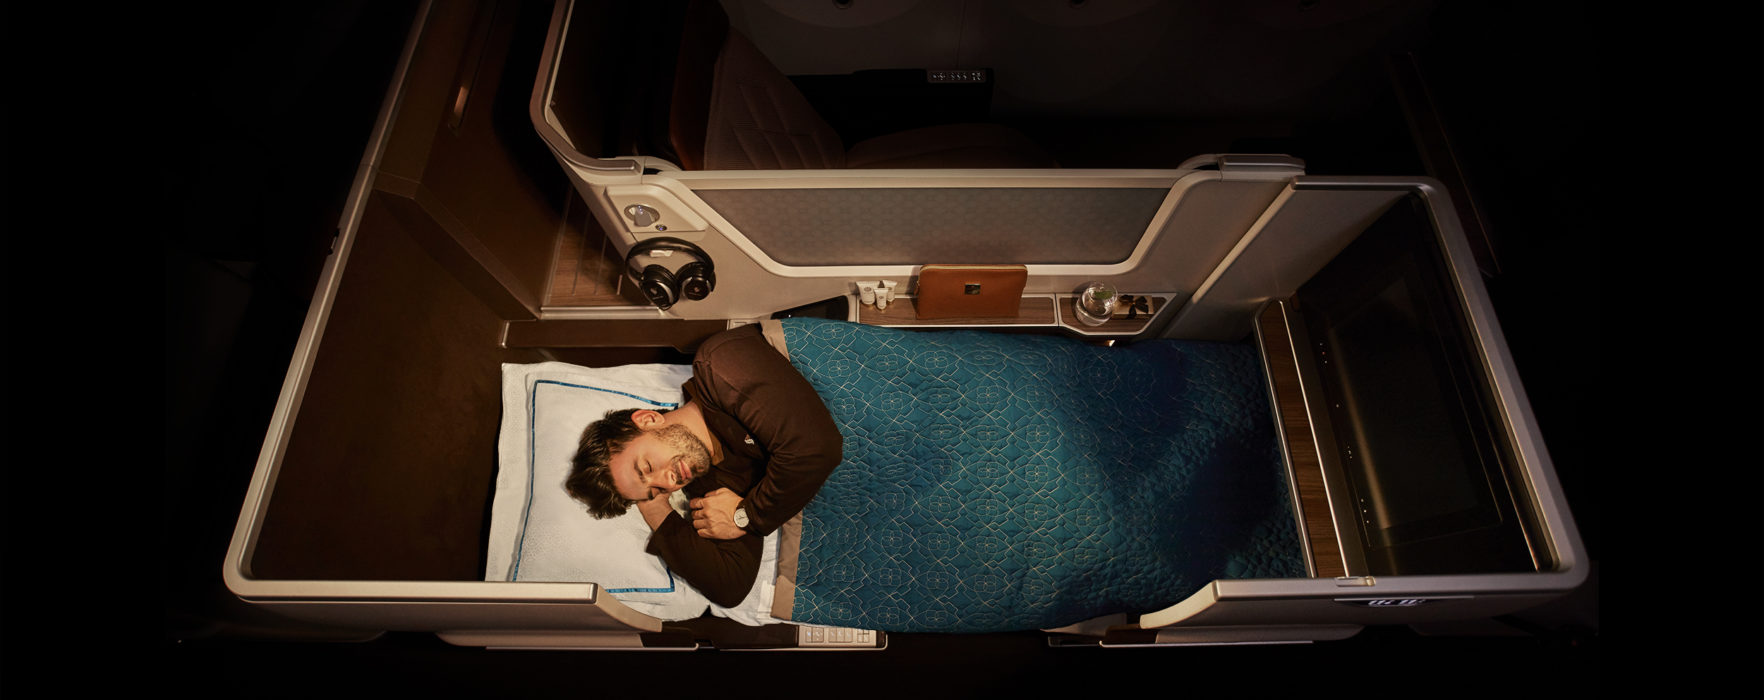 AIRLINE REVIEW: Oman Air Business Class – new Dreamliner service from Manchester to Muscat